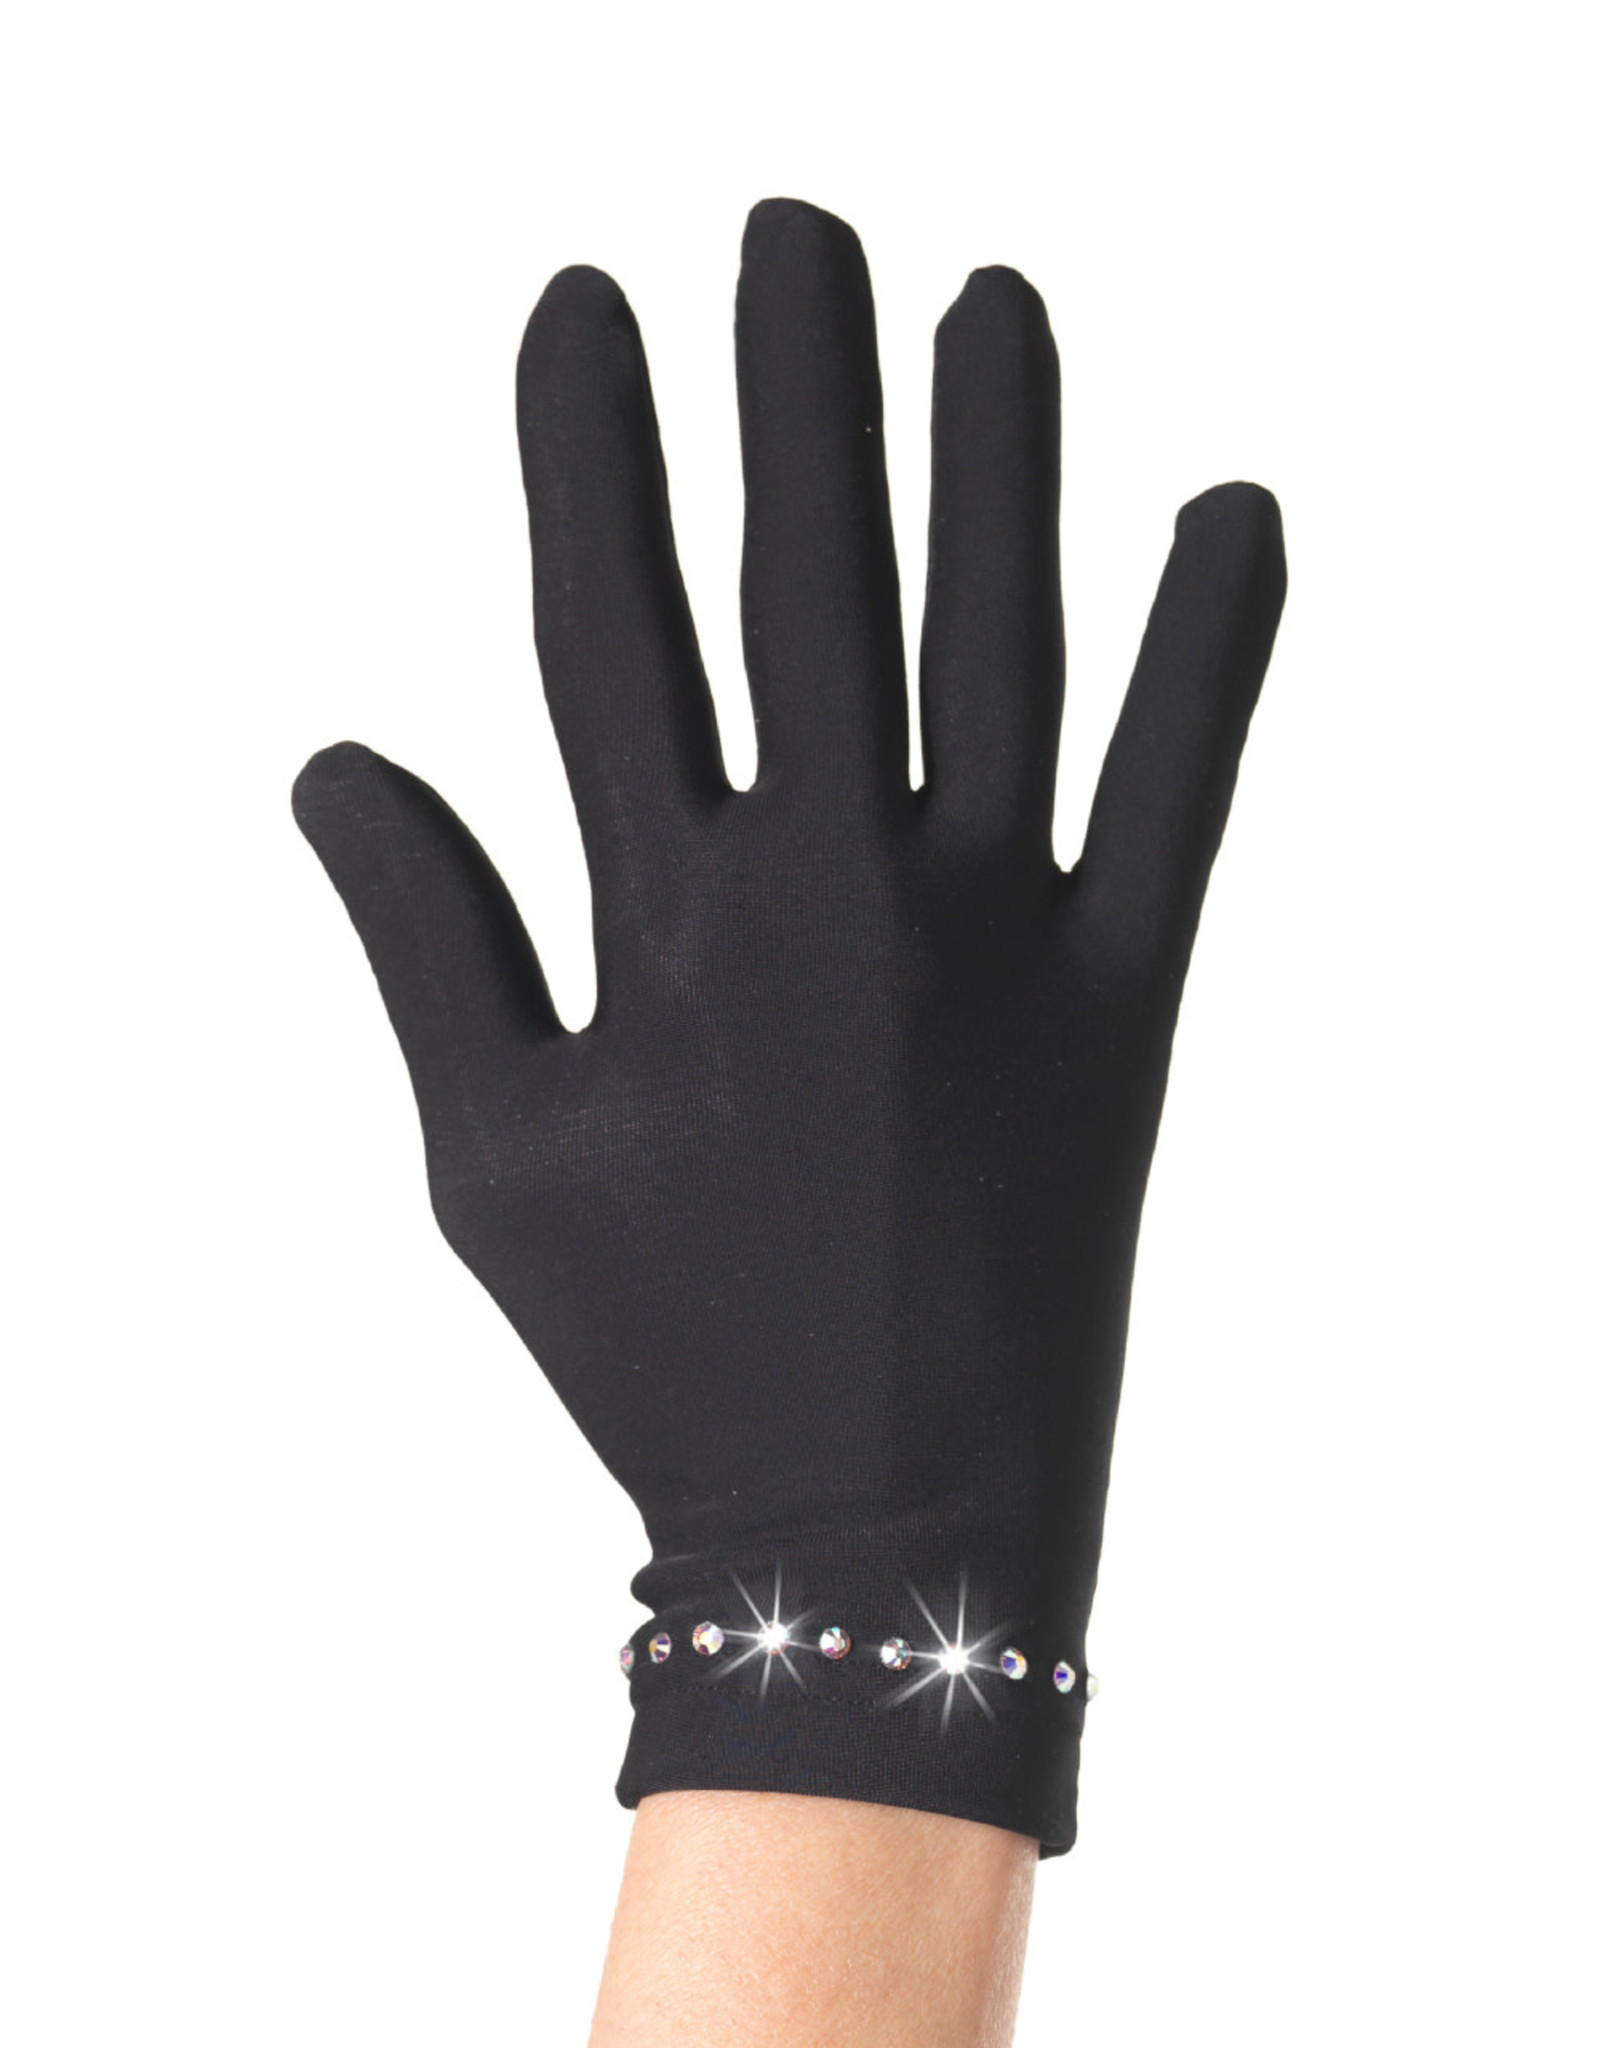 Sagester Gloves with Crystals 536 Termico